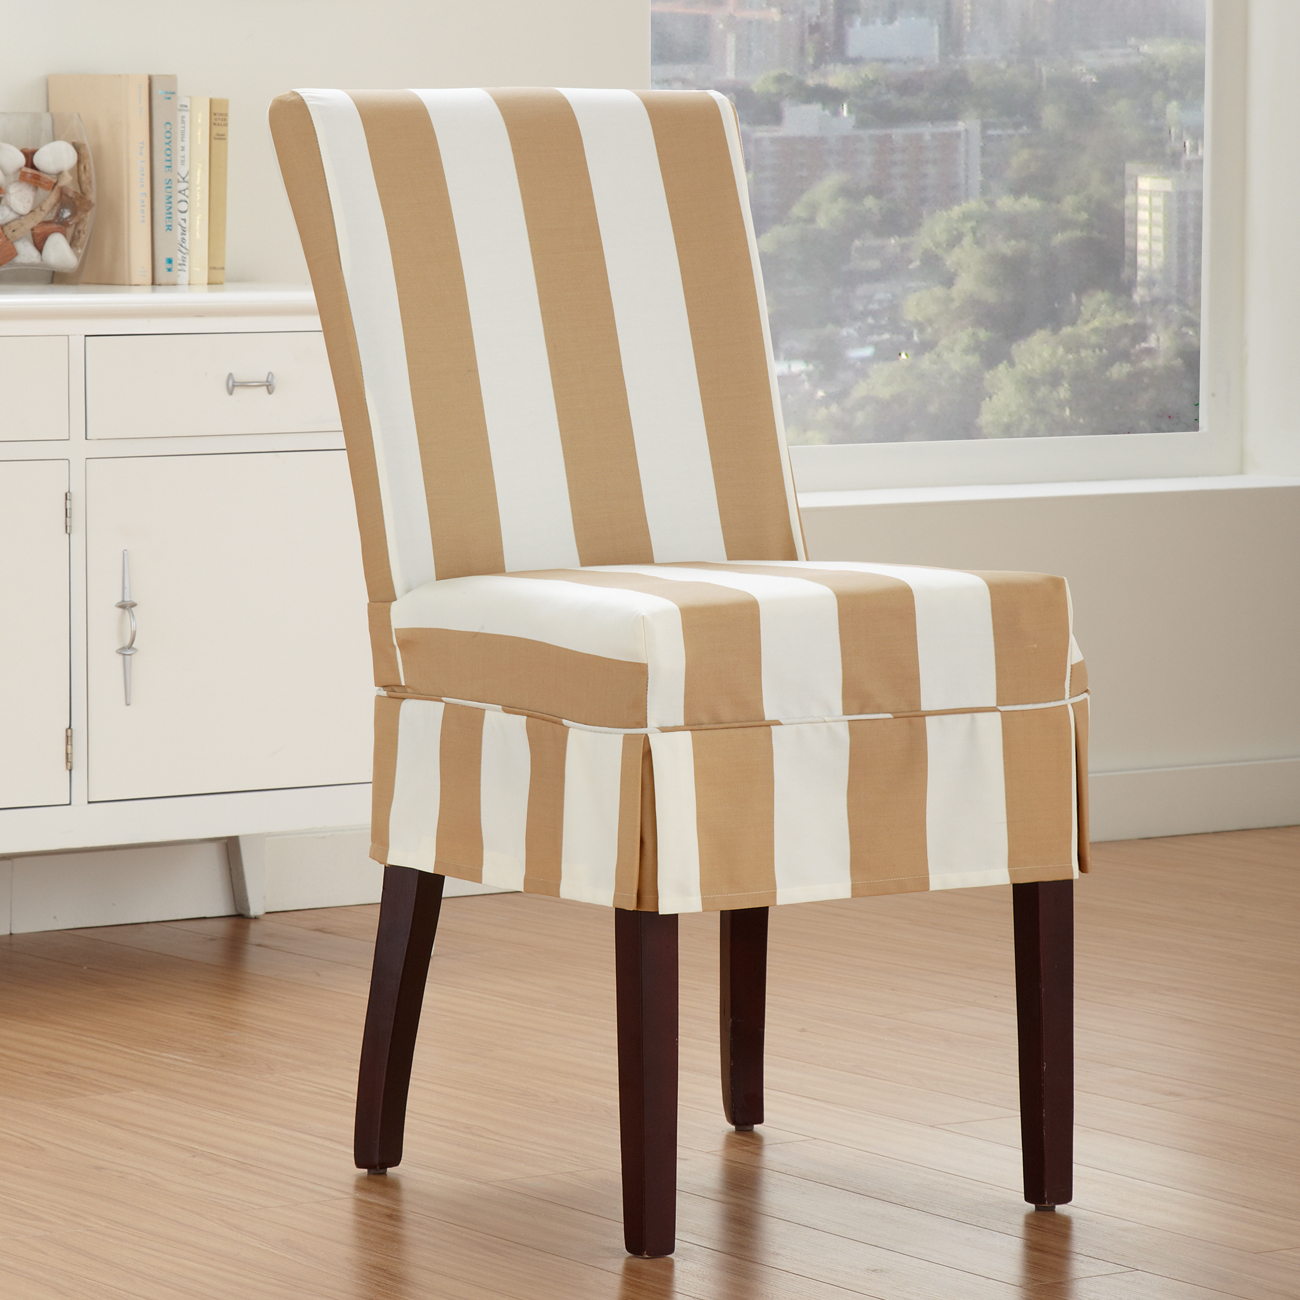 Dining chair slip cover - large and beautiful photos. Photo to ...